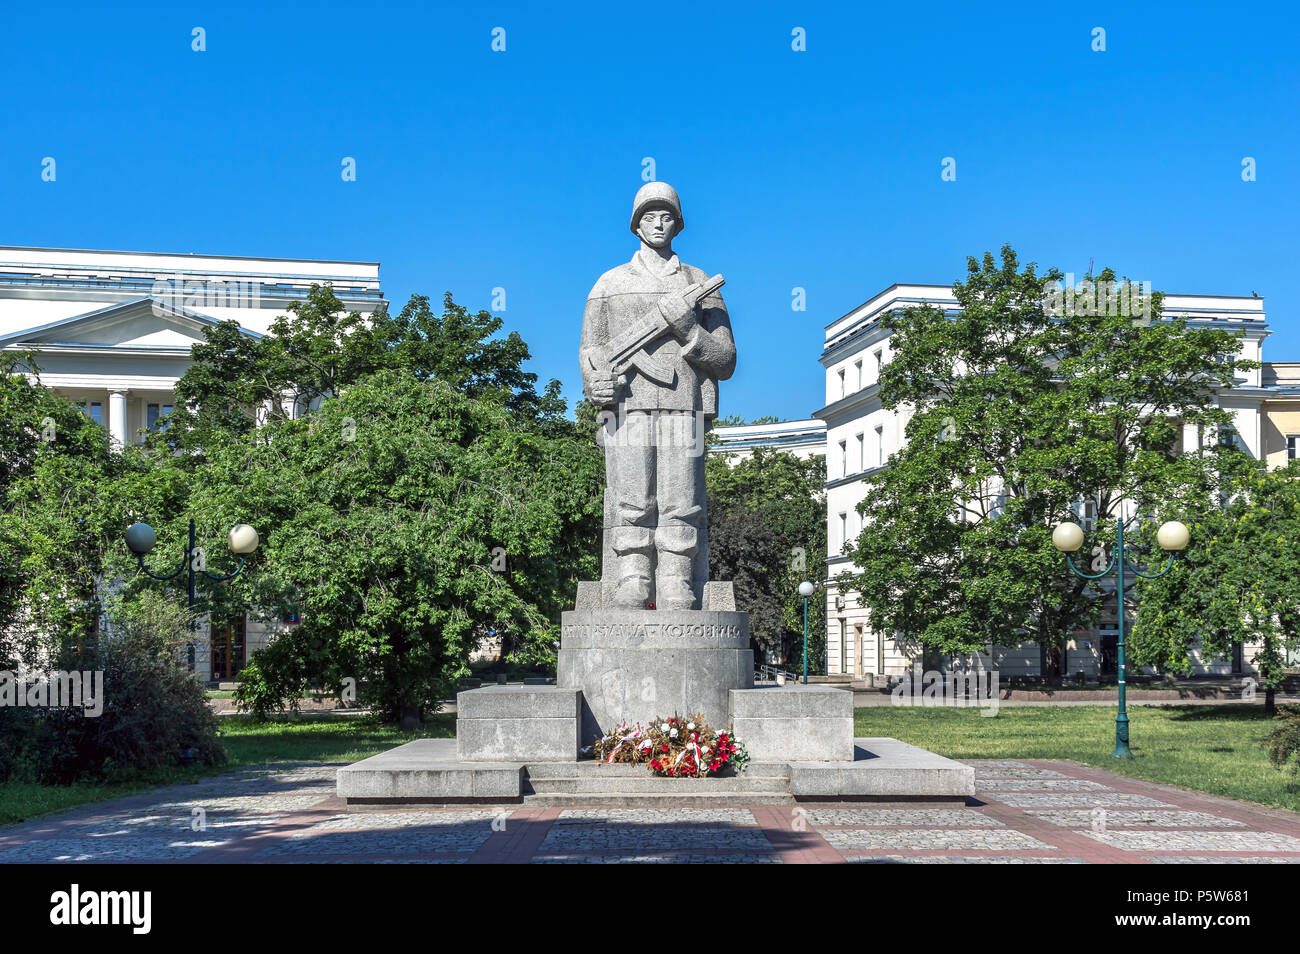 Warsaw, Poland - May 31st, 2018: Monument to soldiers of 1 Polish Army, formed by the Polish communists in the Soviet Union in 1943. - Stock Image